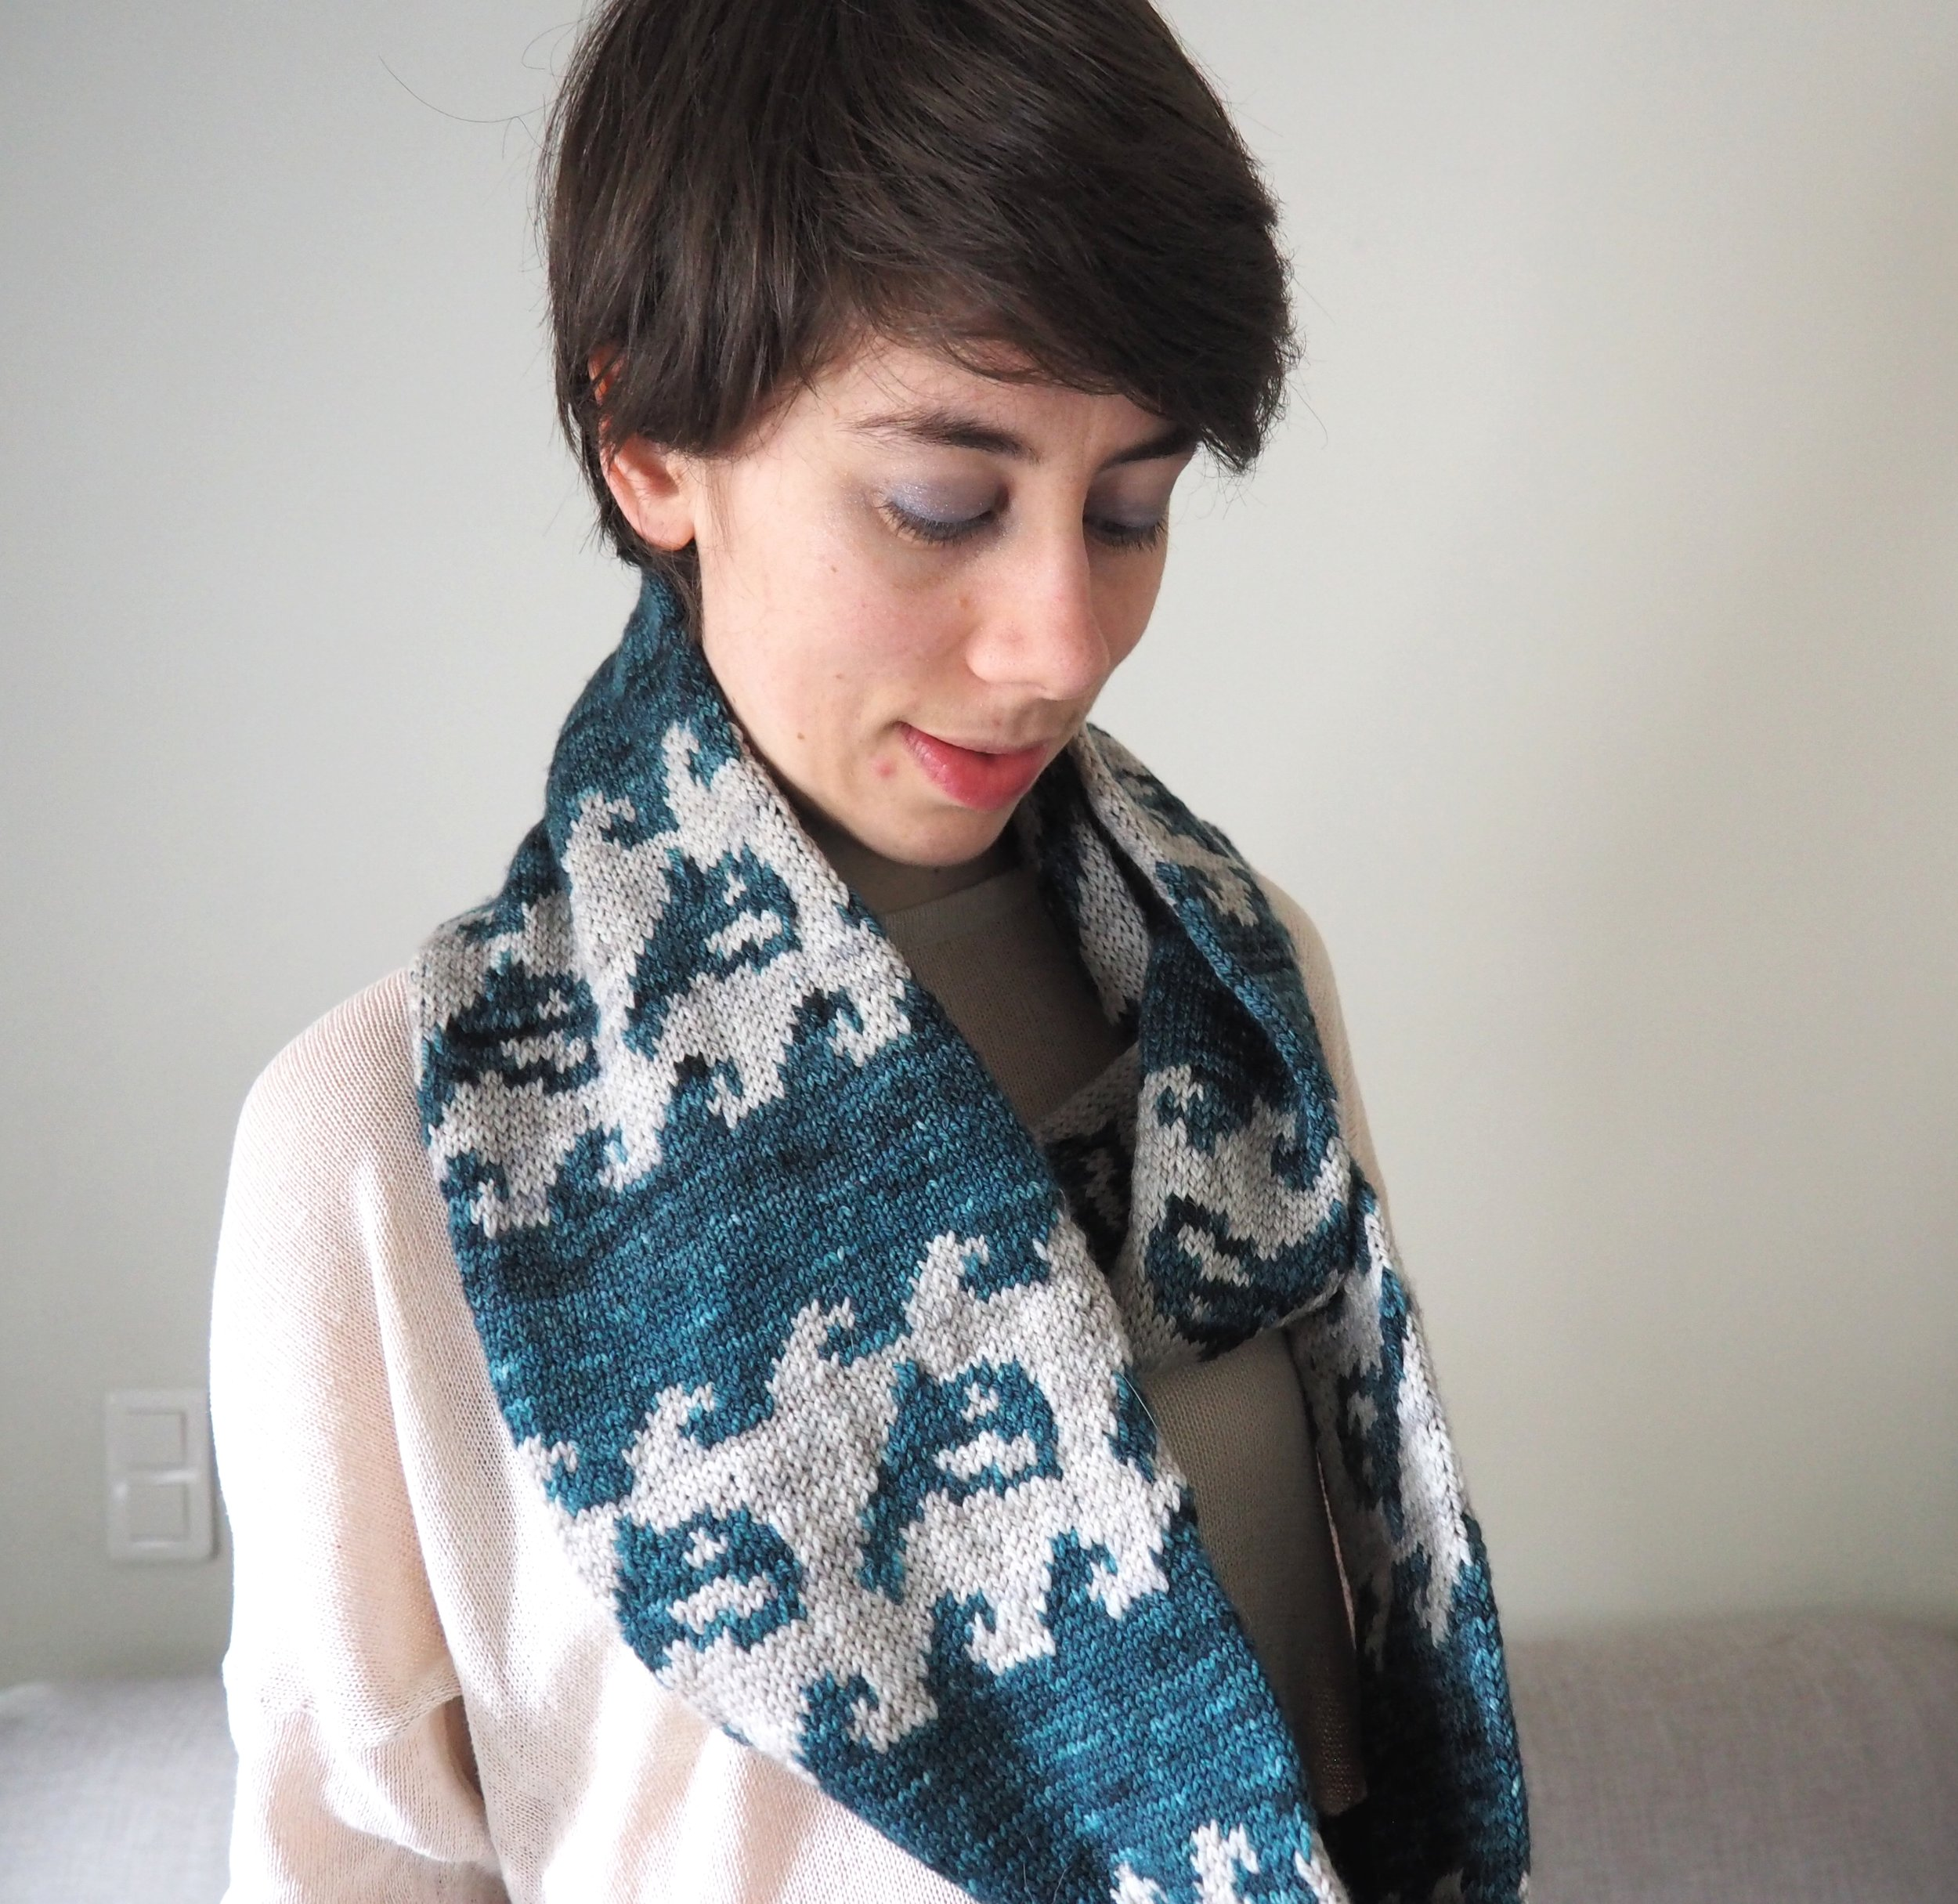 Orca Cowl - This cowl is worked in the round, sideways with a two-color stranded pattern that represents a whole orca society swimming across the ocean together. This versatile design is available in two sizes and when you wear it around your neck, it will tell the world just how strong your tribe is!